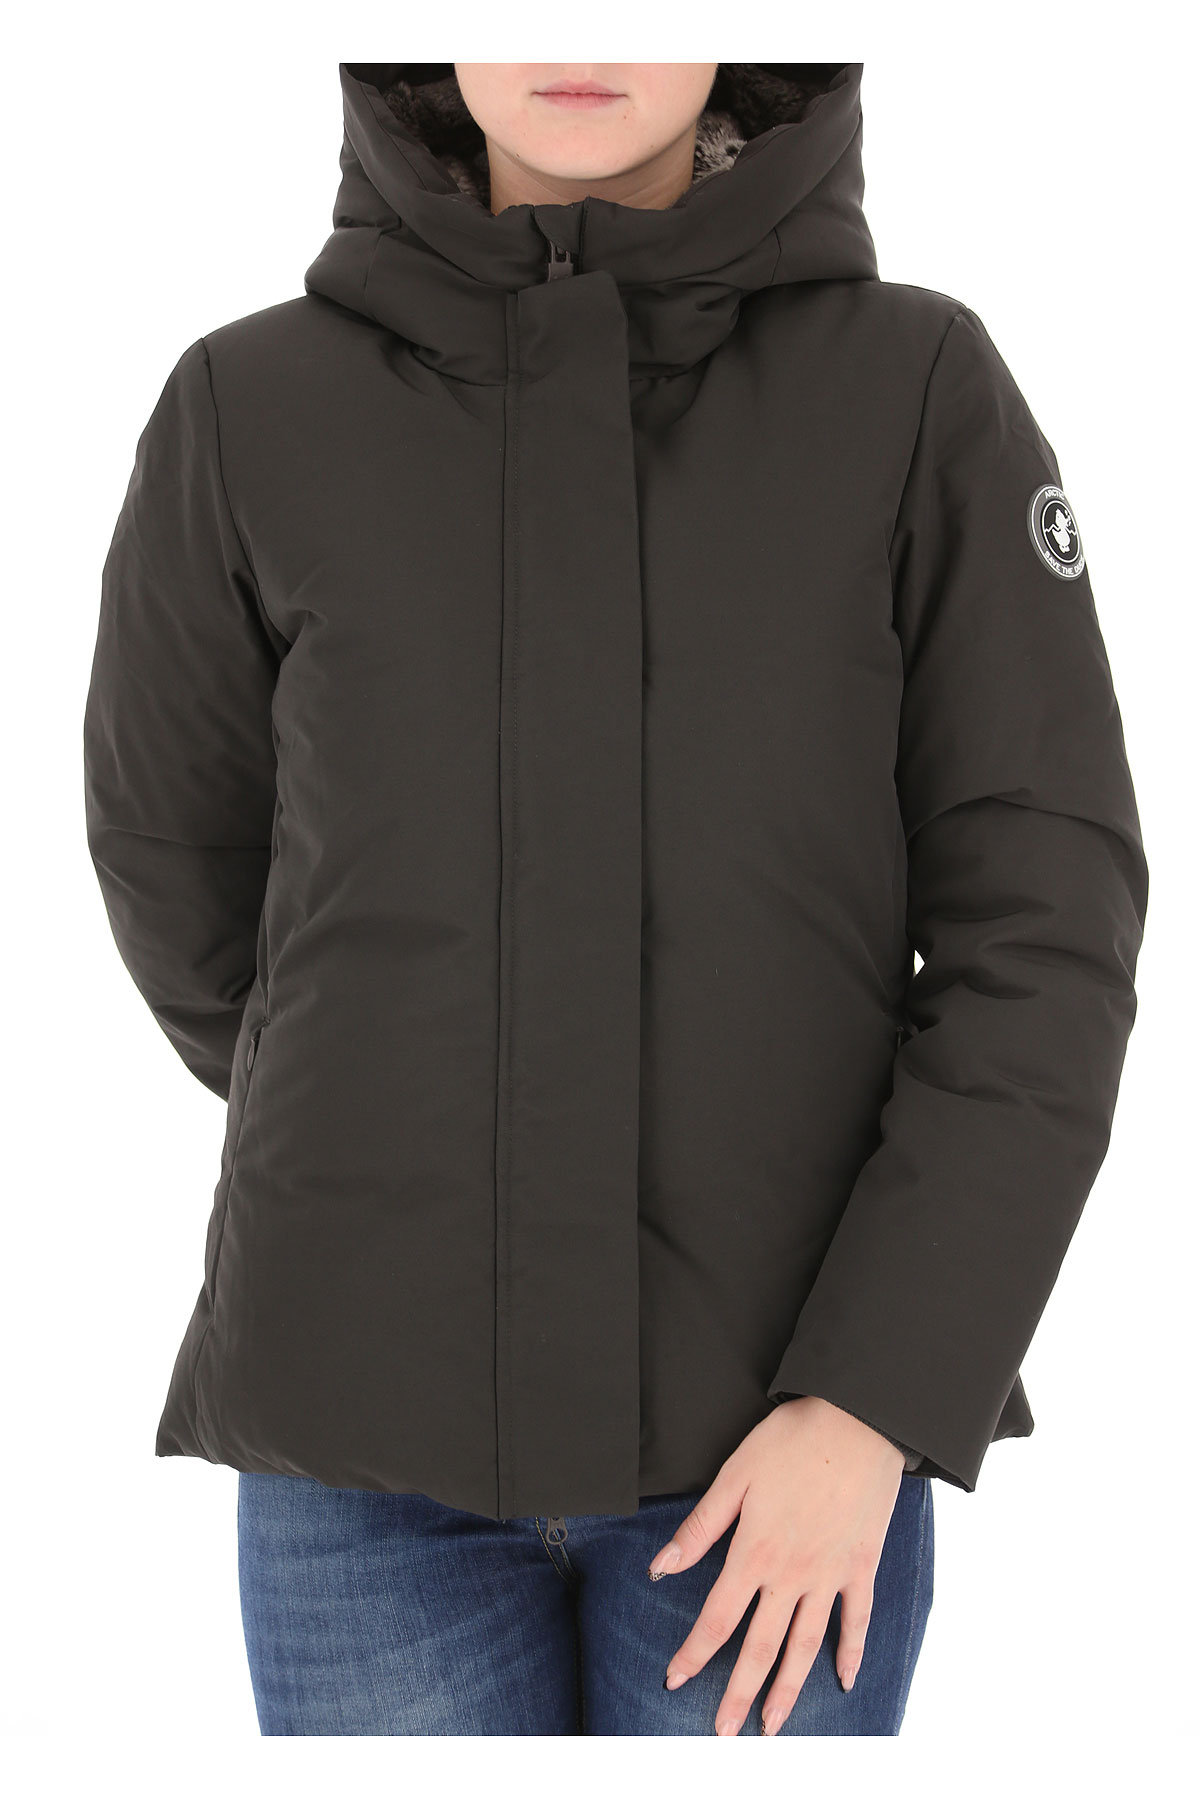 Oscuro Duck Para 19 ébano The 2018 Mujer Otoño invierno Save nbsp; Ropa vq6OnBWp